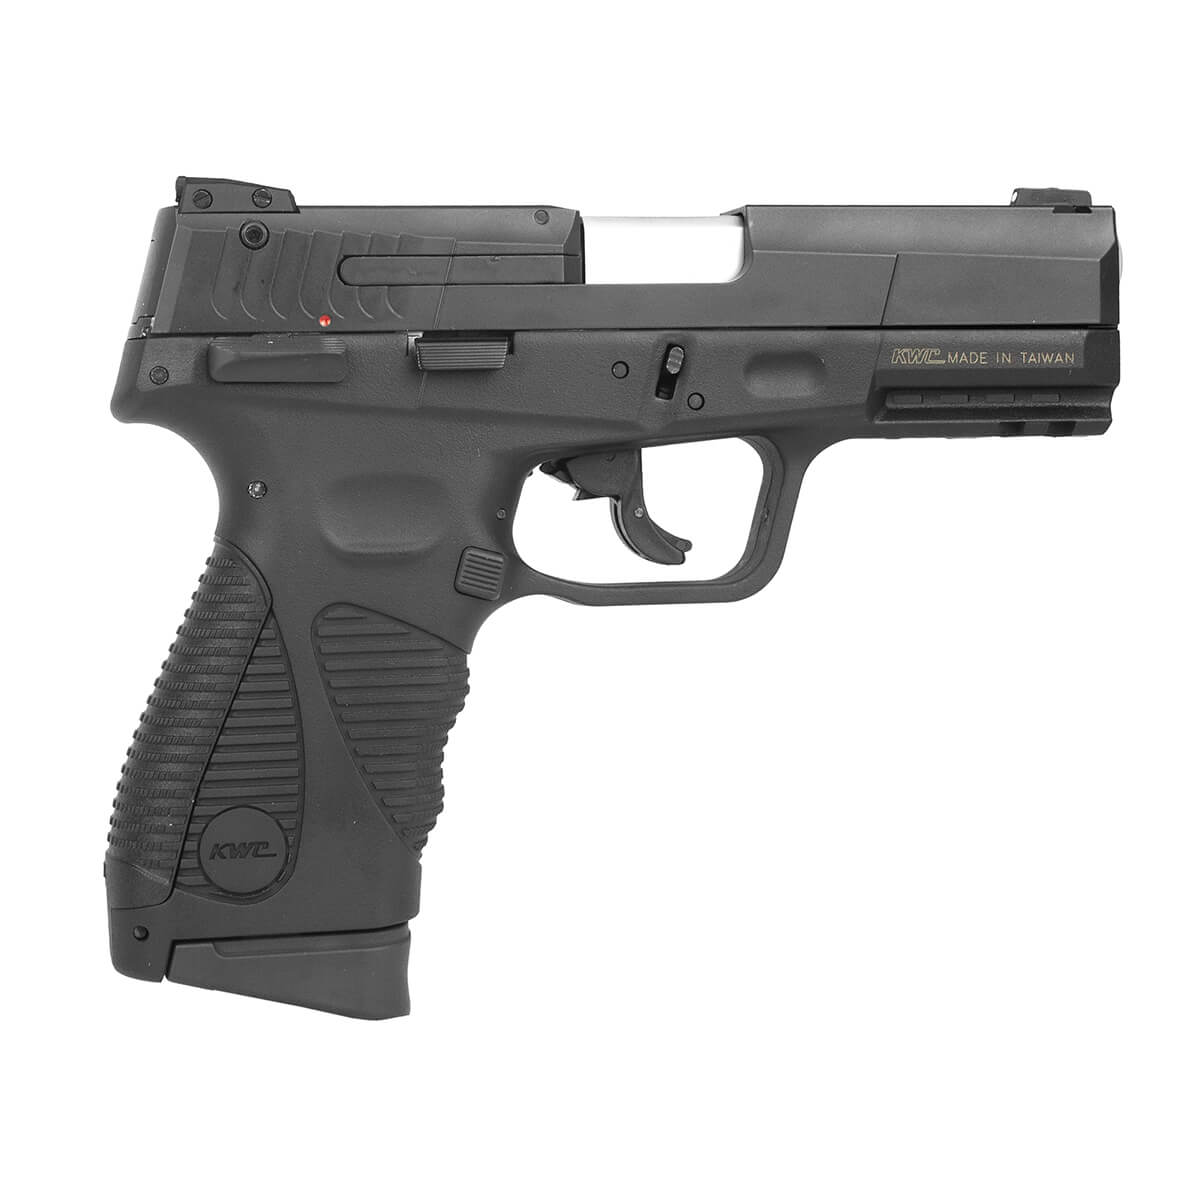 Pistola de Pressão KWC 24/7 G2 Co2 4,5mm Slide Metal Blowback